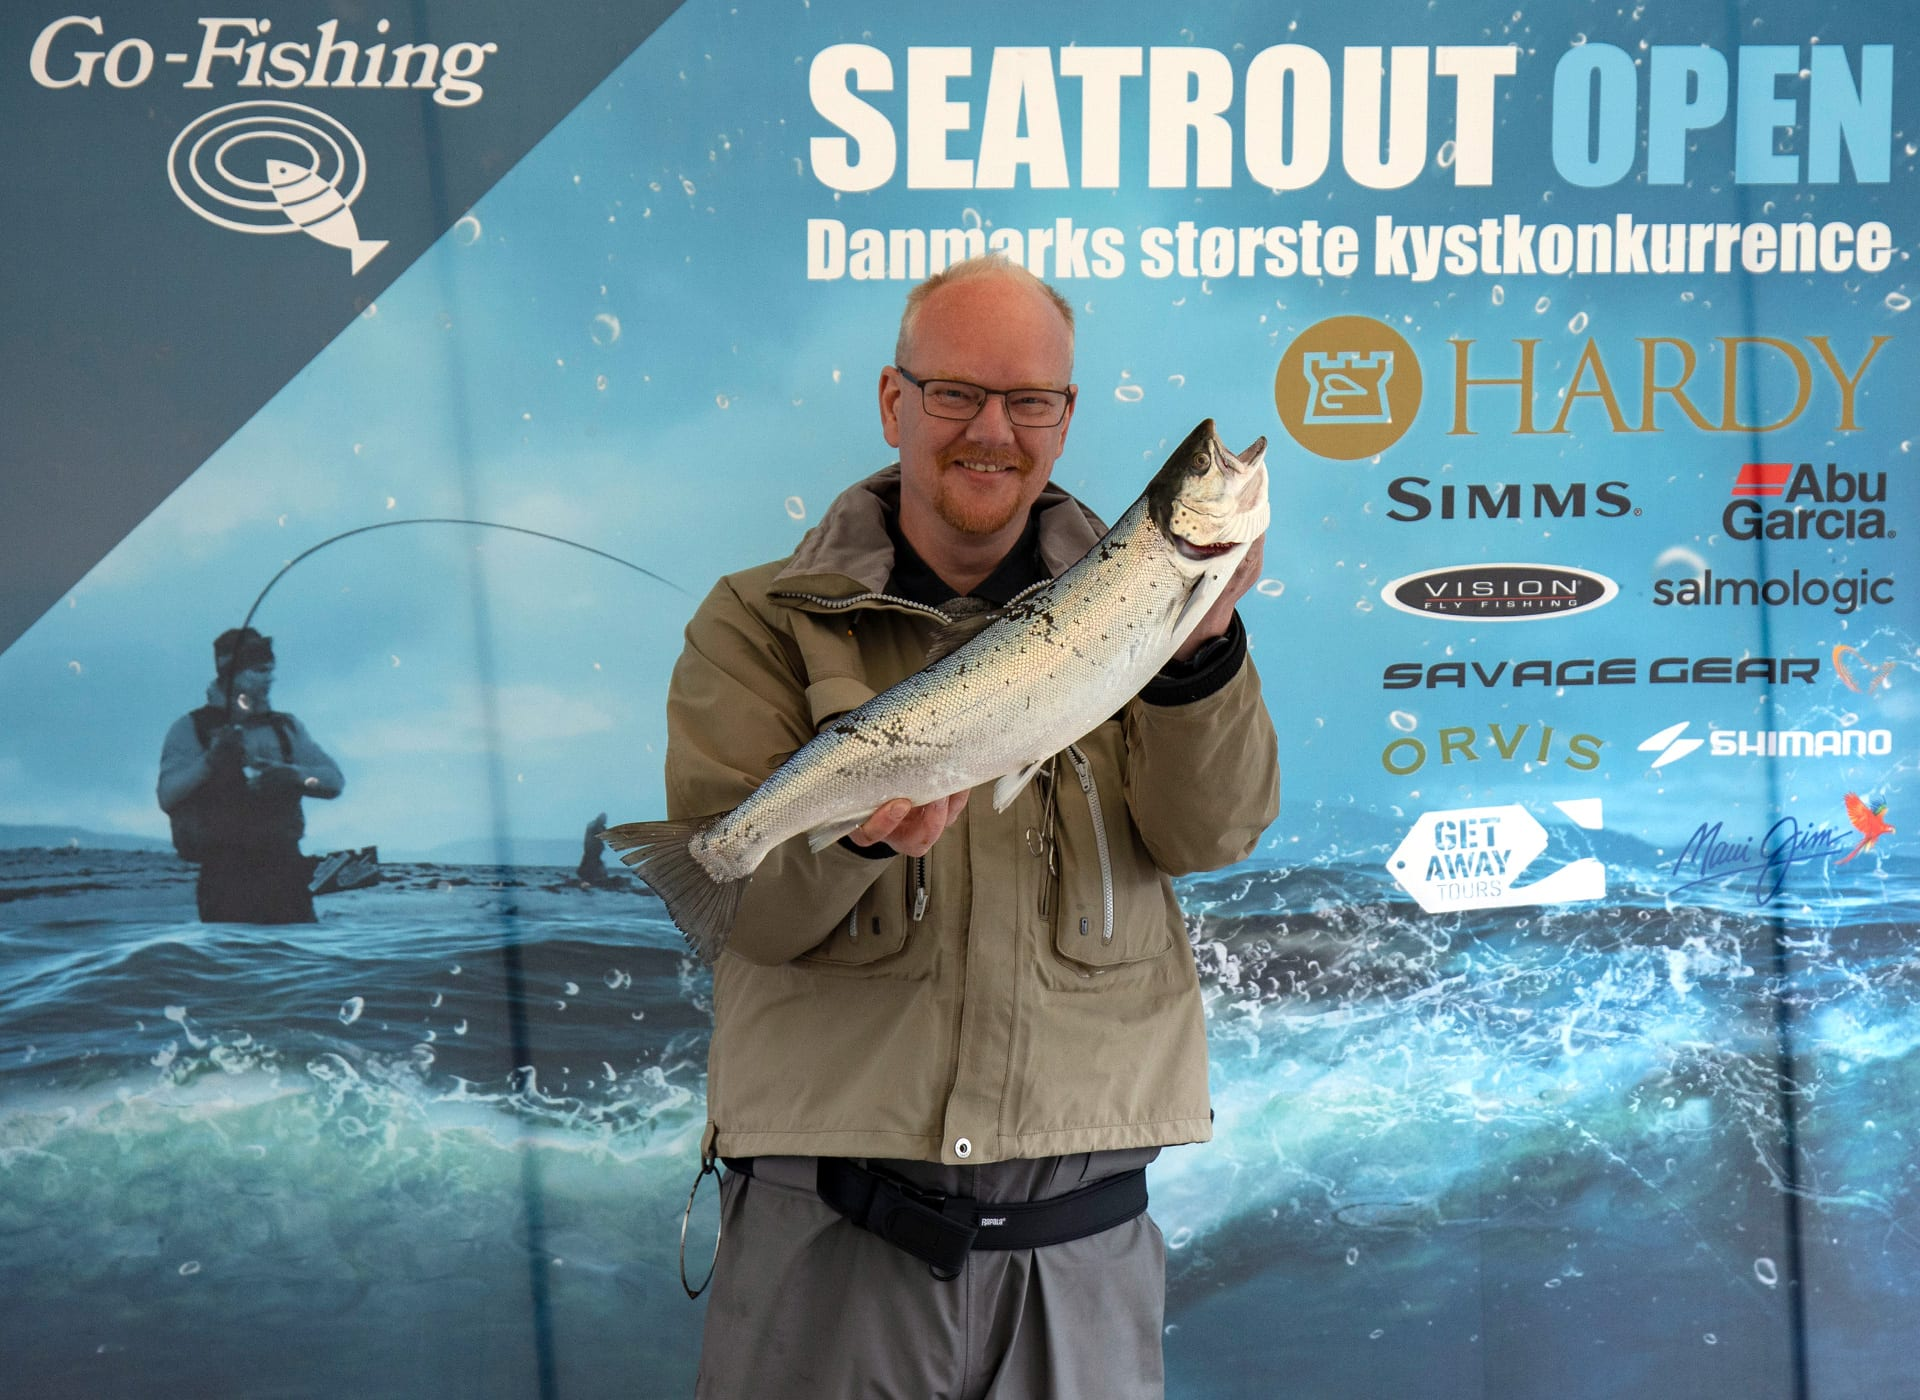 Seatrout Open deltager Jimmi Steinicke